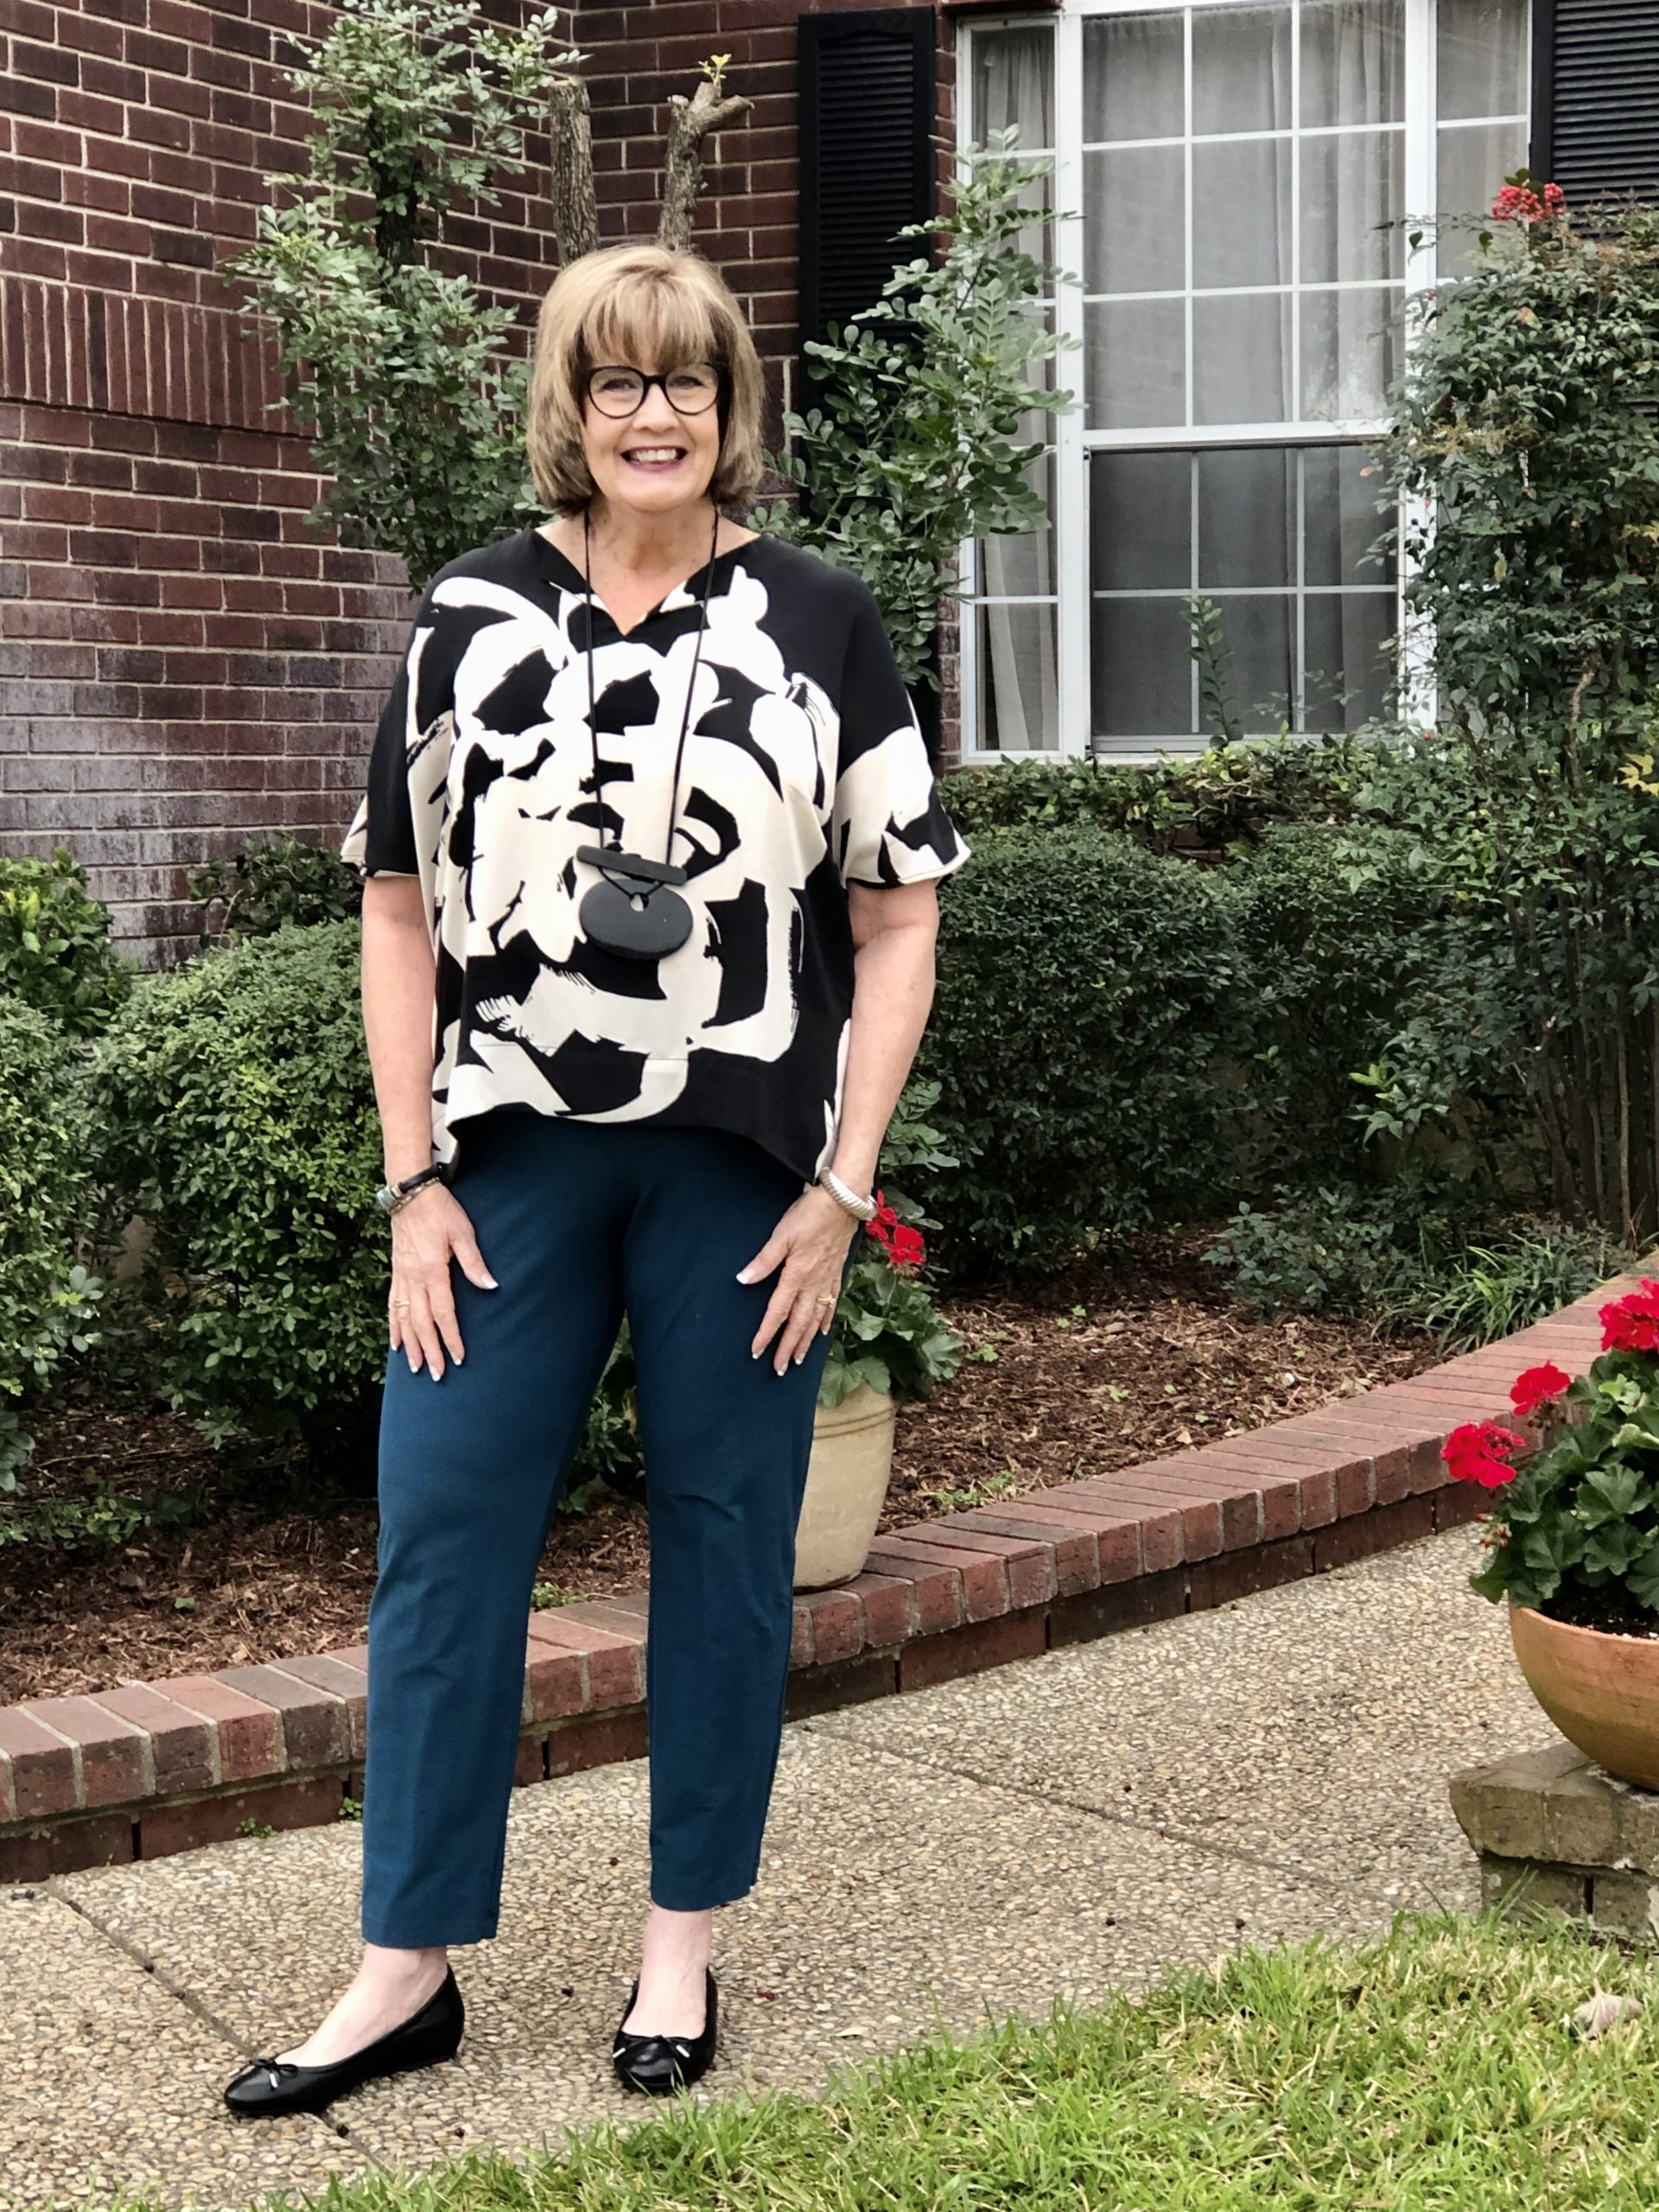 Pamela Lutrell in black & white artistic top from Chicos